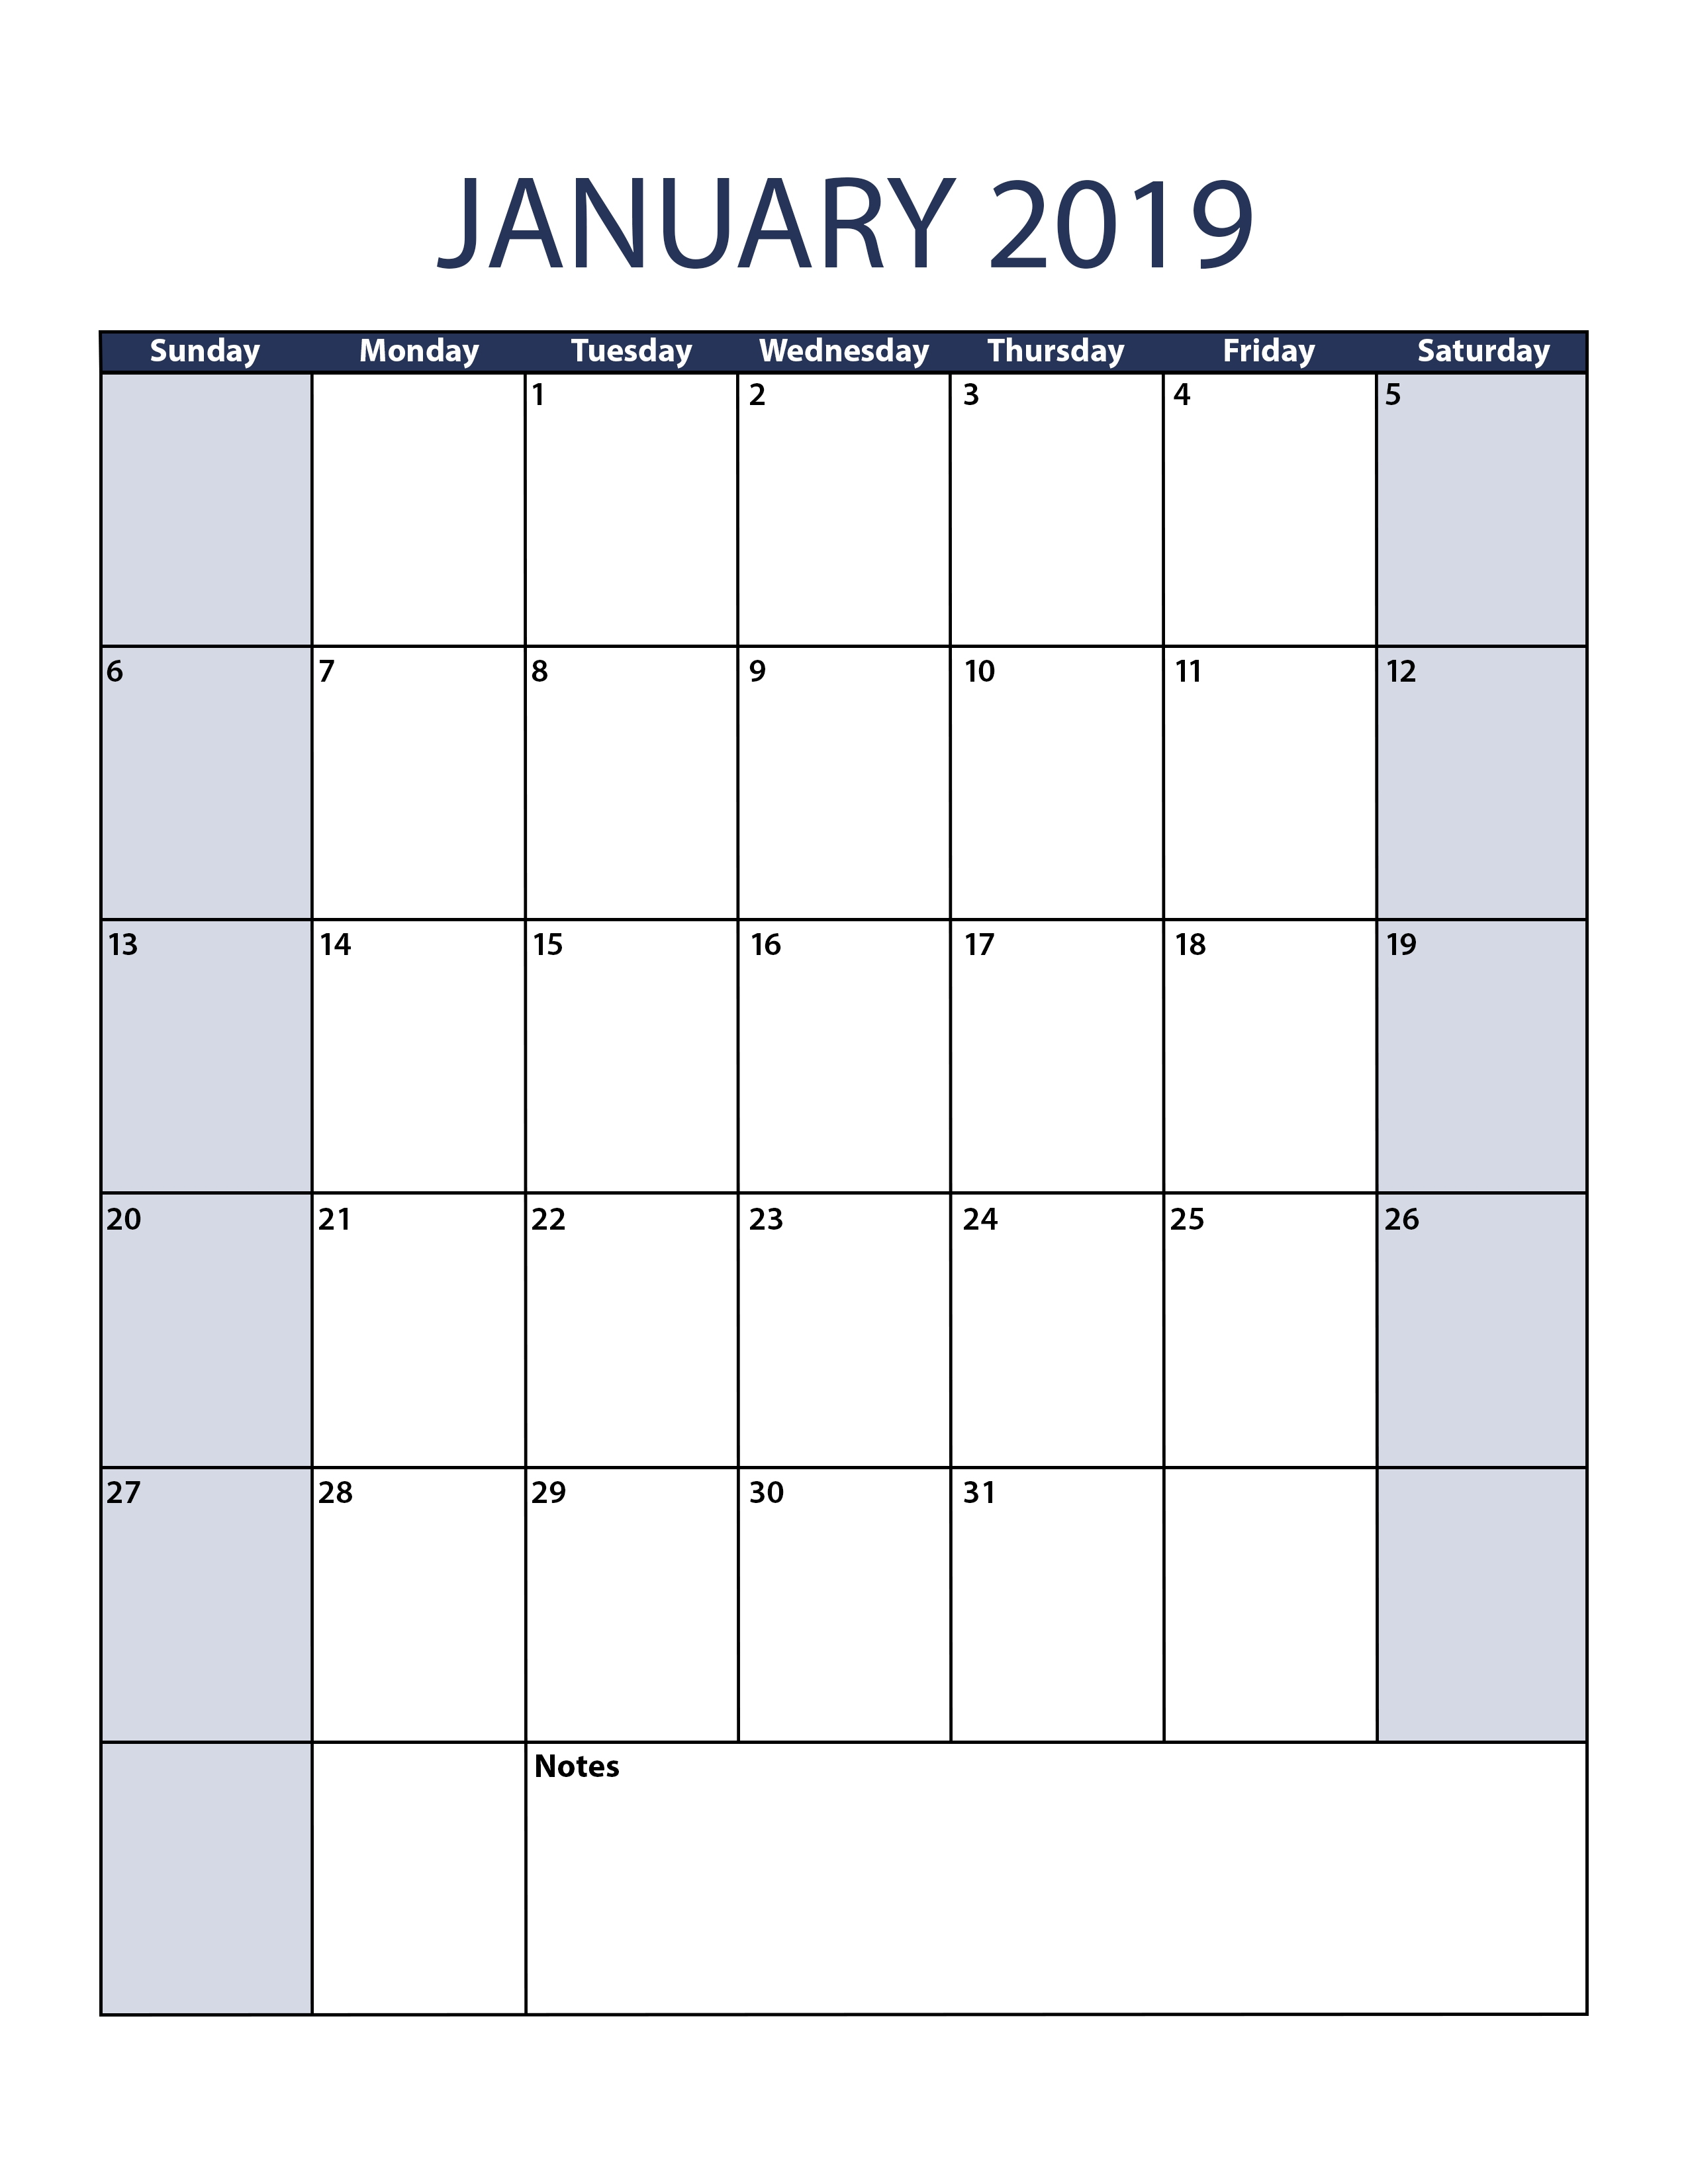 january 2019 calendar template::January 2019 Calendar Templates